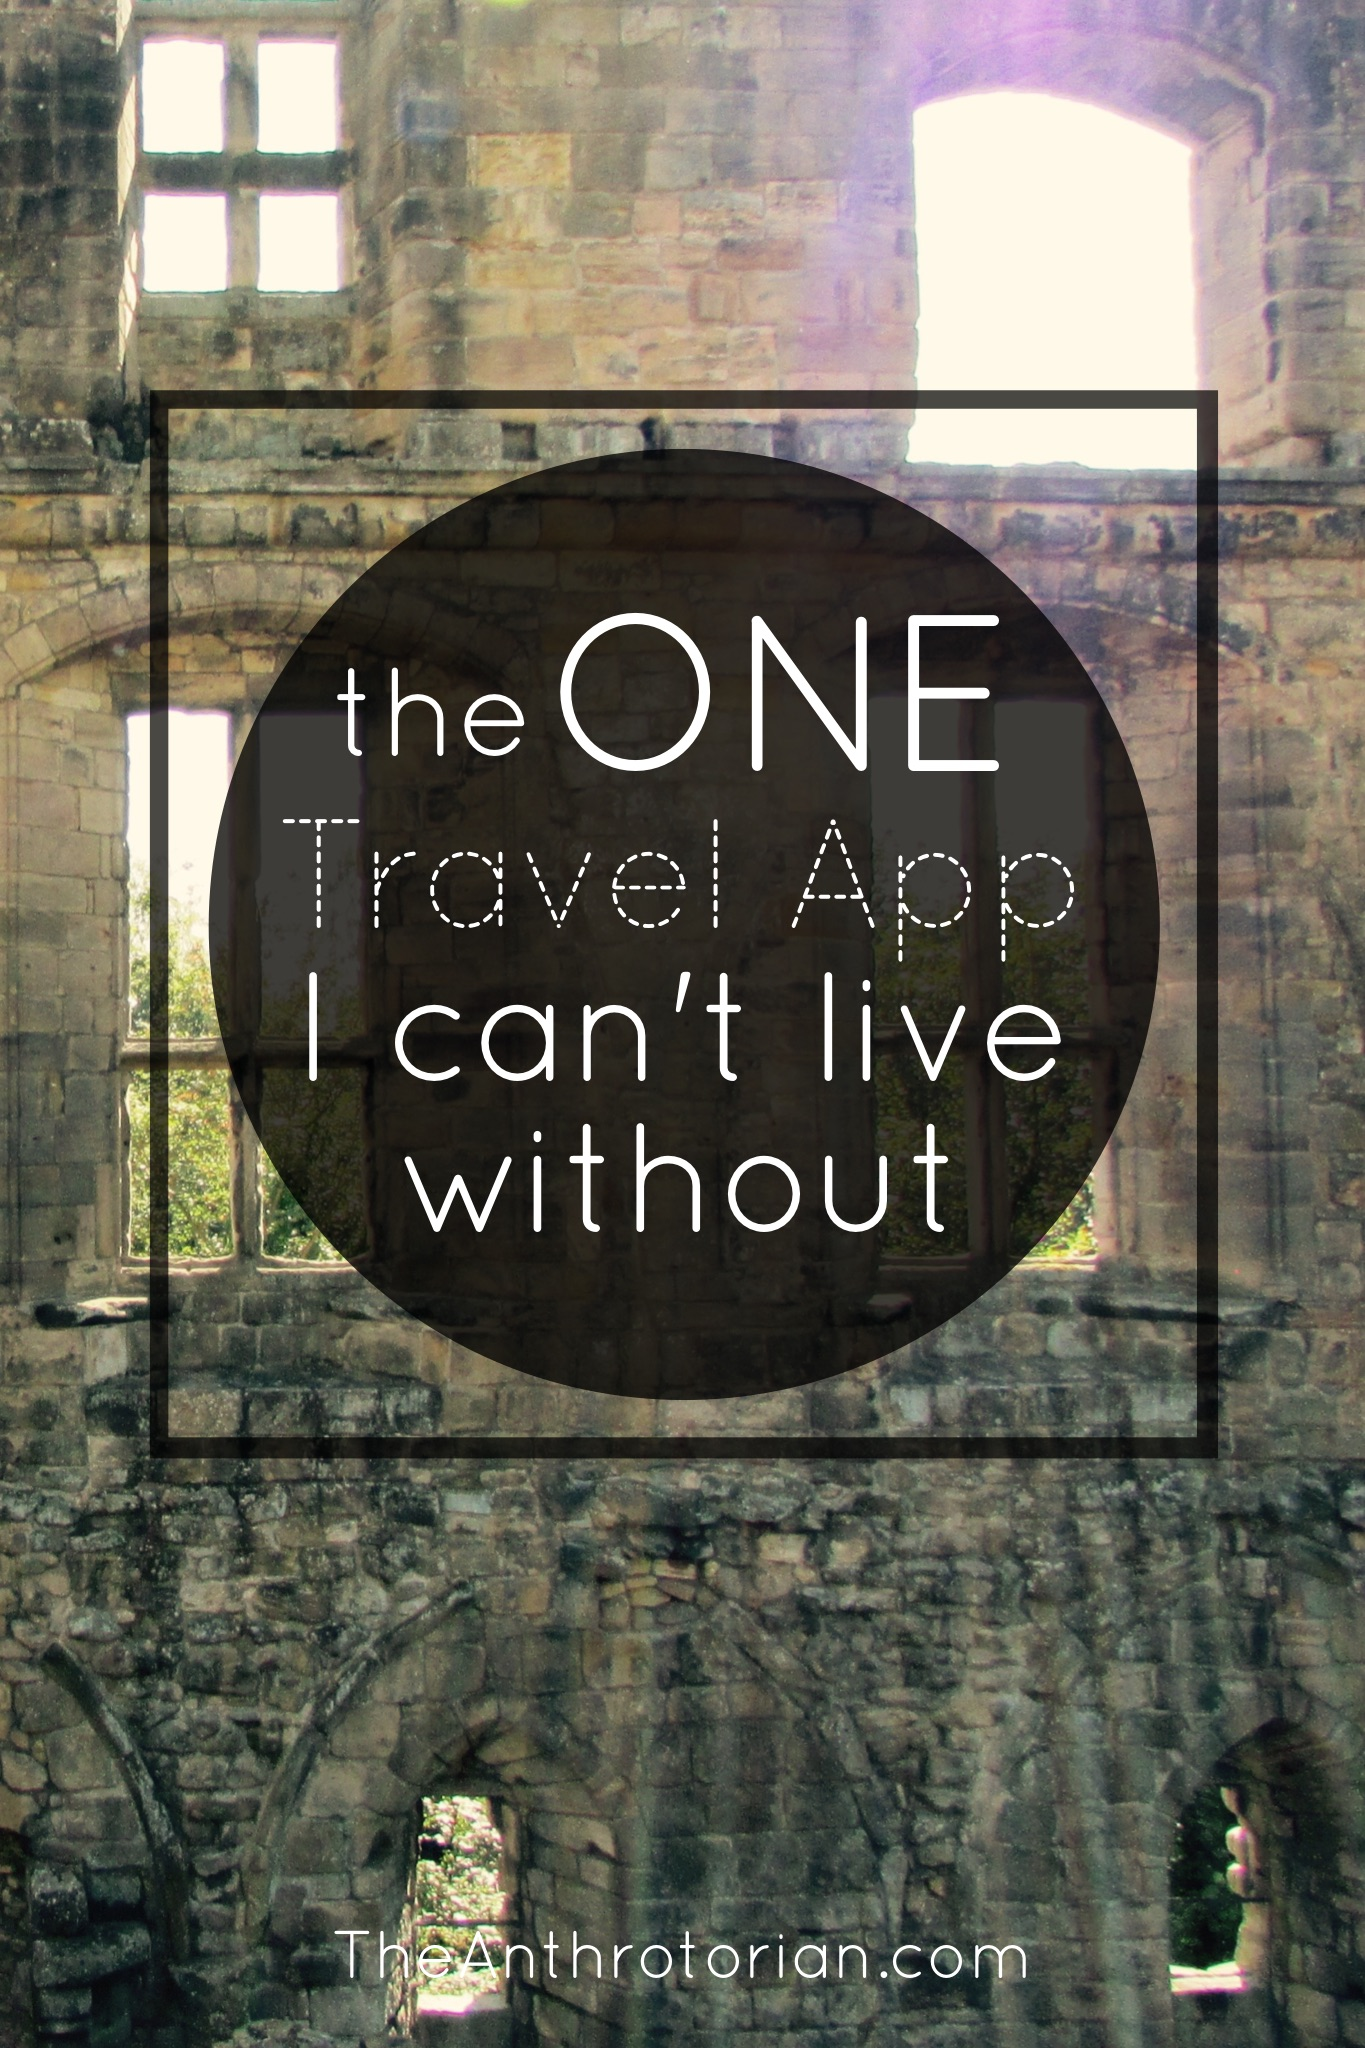 The One Travel App I Can't Live Without